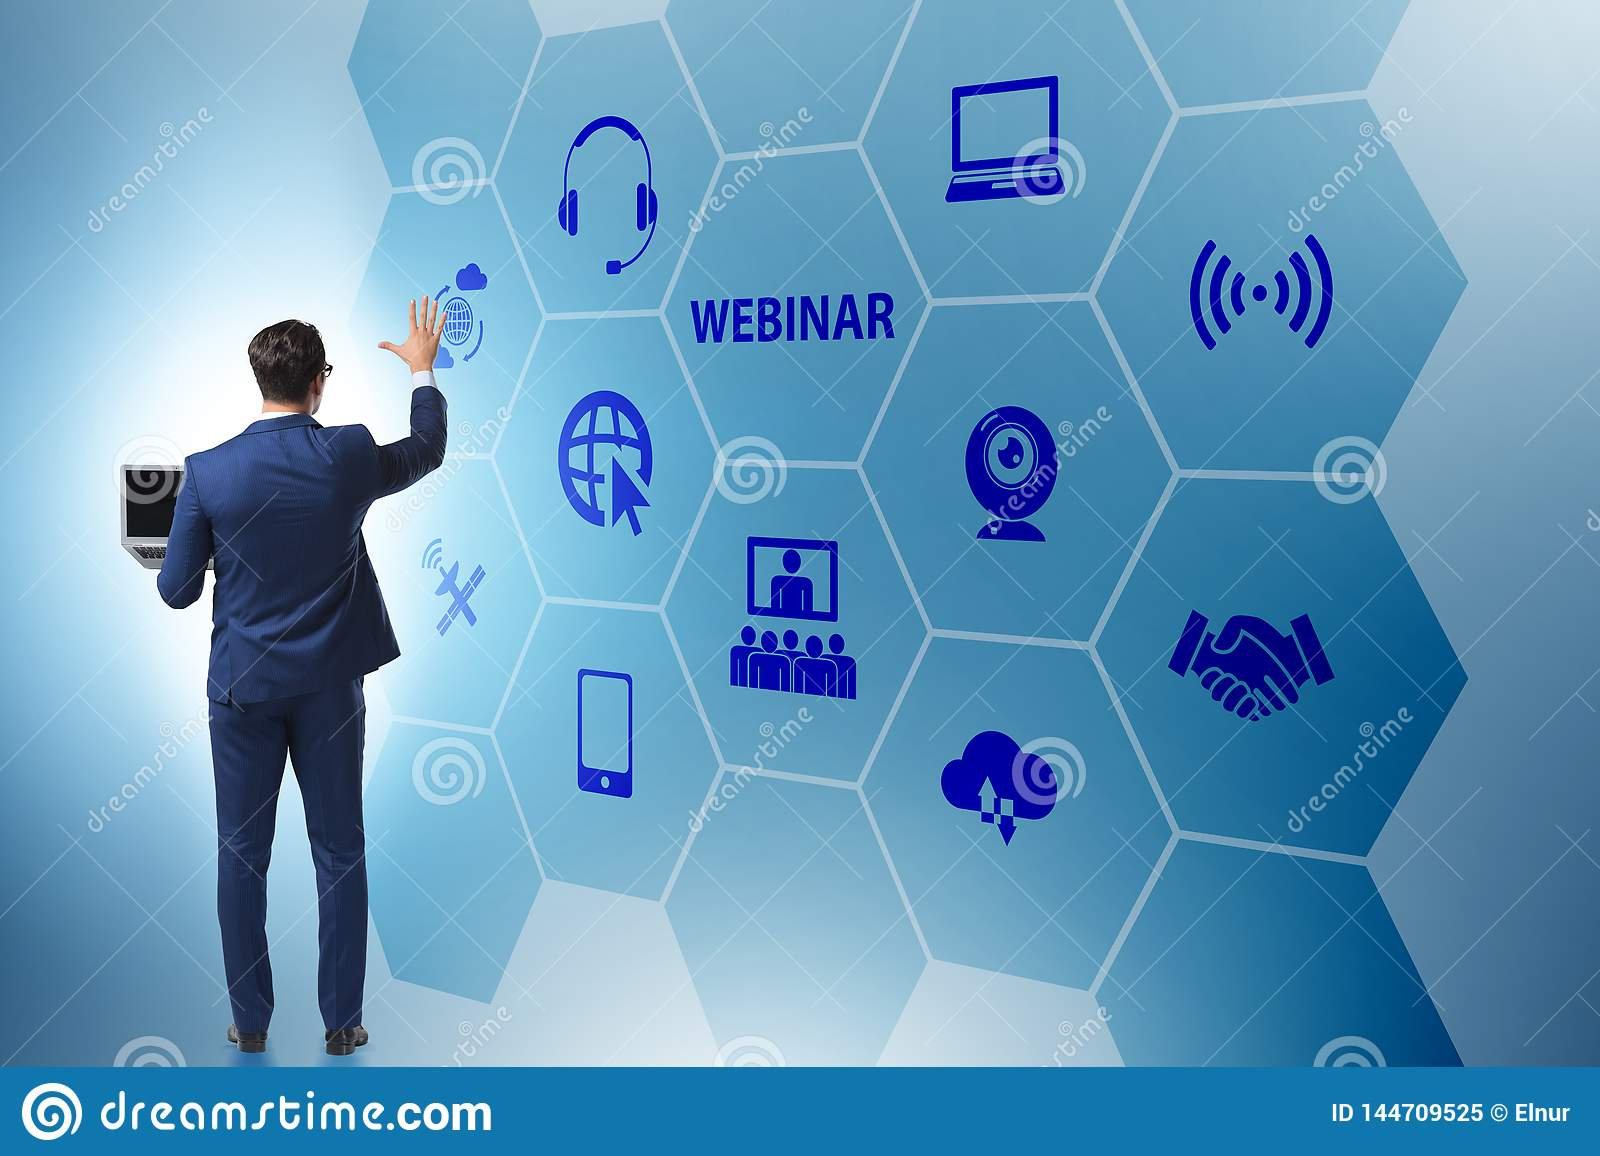 The businessman in online webinar concept